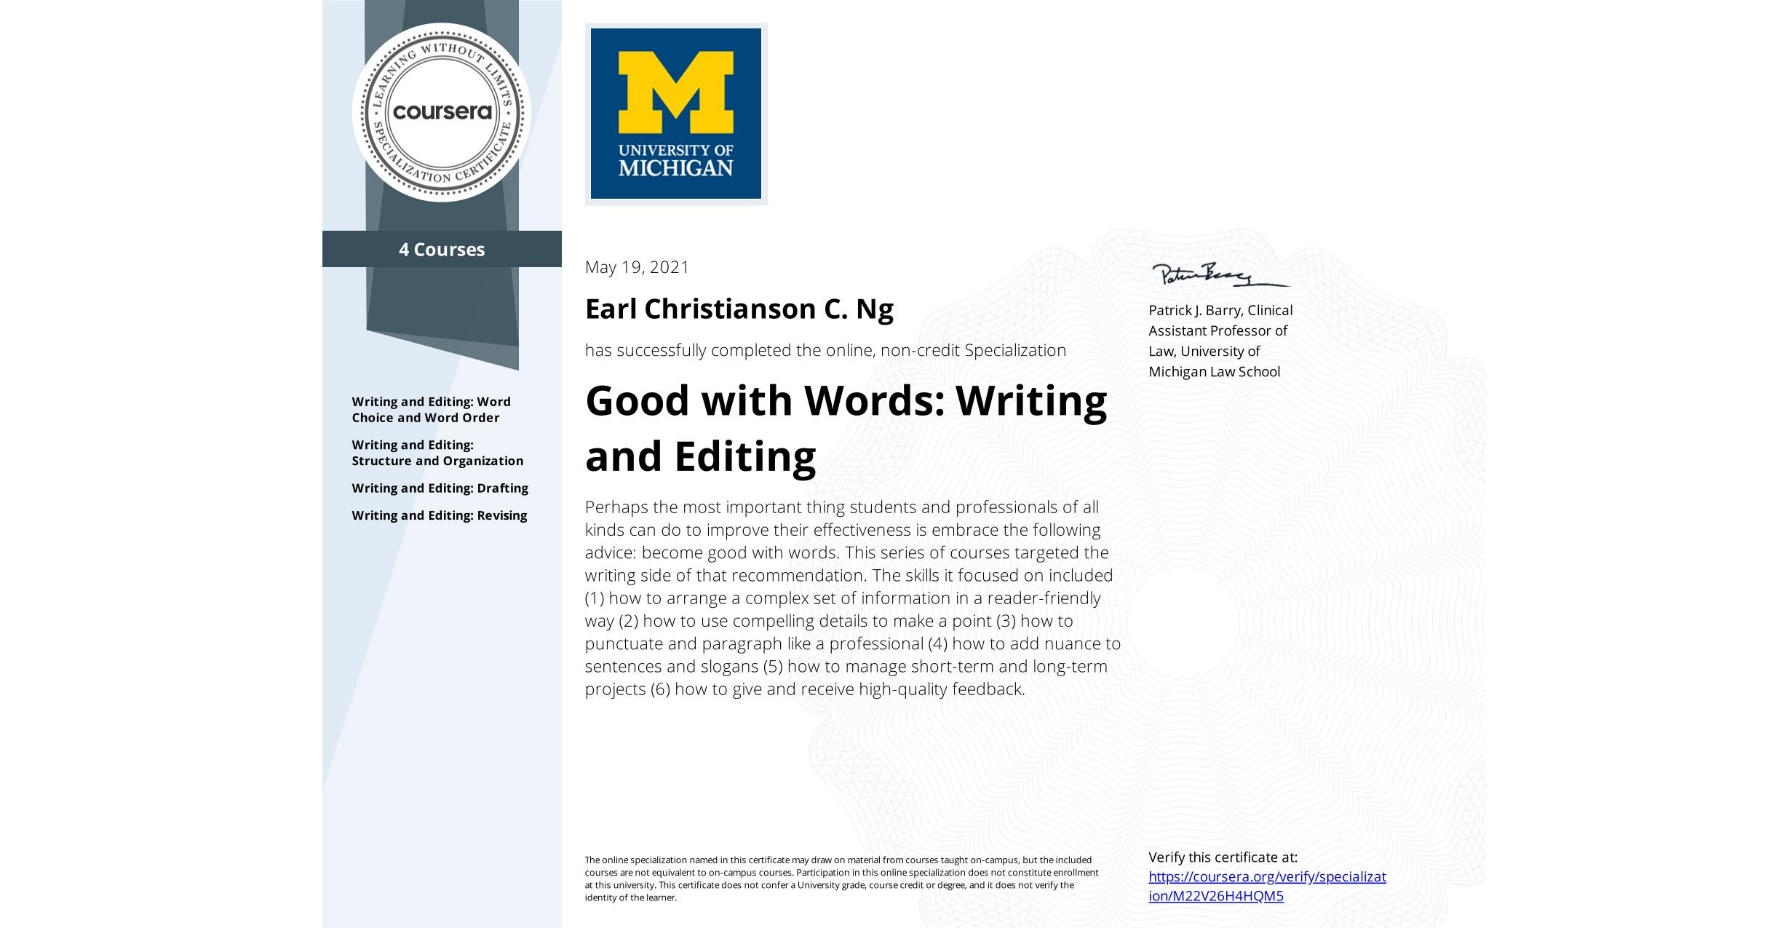 View certificate for Earl Christianson C. Ng, Good with Words: Writing and Editing, offered through Coursera. Perhaps the most important thing students and professionals of all kinds can do to improve their effectiveness is embrace the following advice: become good with words.  This series of courses targeted the writing side of that recommendation. The skills it focused on included (1) how to arrange a complex set of information in a reader-friendly way (2) how to use compelling details to make a point (3) how to punctuate and paragraph like a professional (4) how to add nuance to sentences and slogans (5) how to manage short-term and long-term projects (6) how to give and receive high-quality feedback.